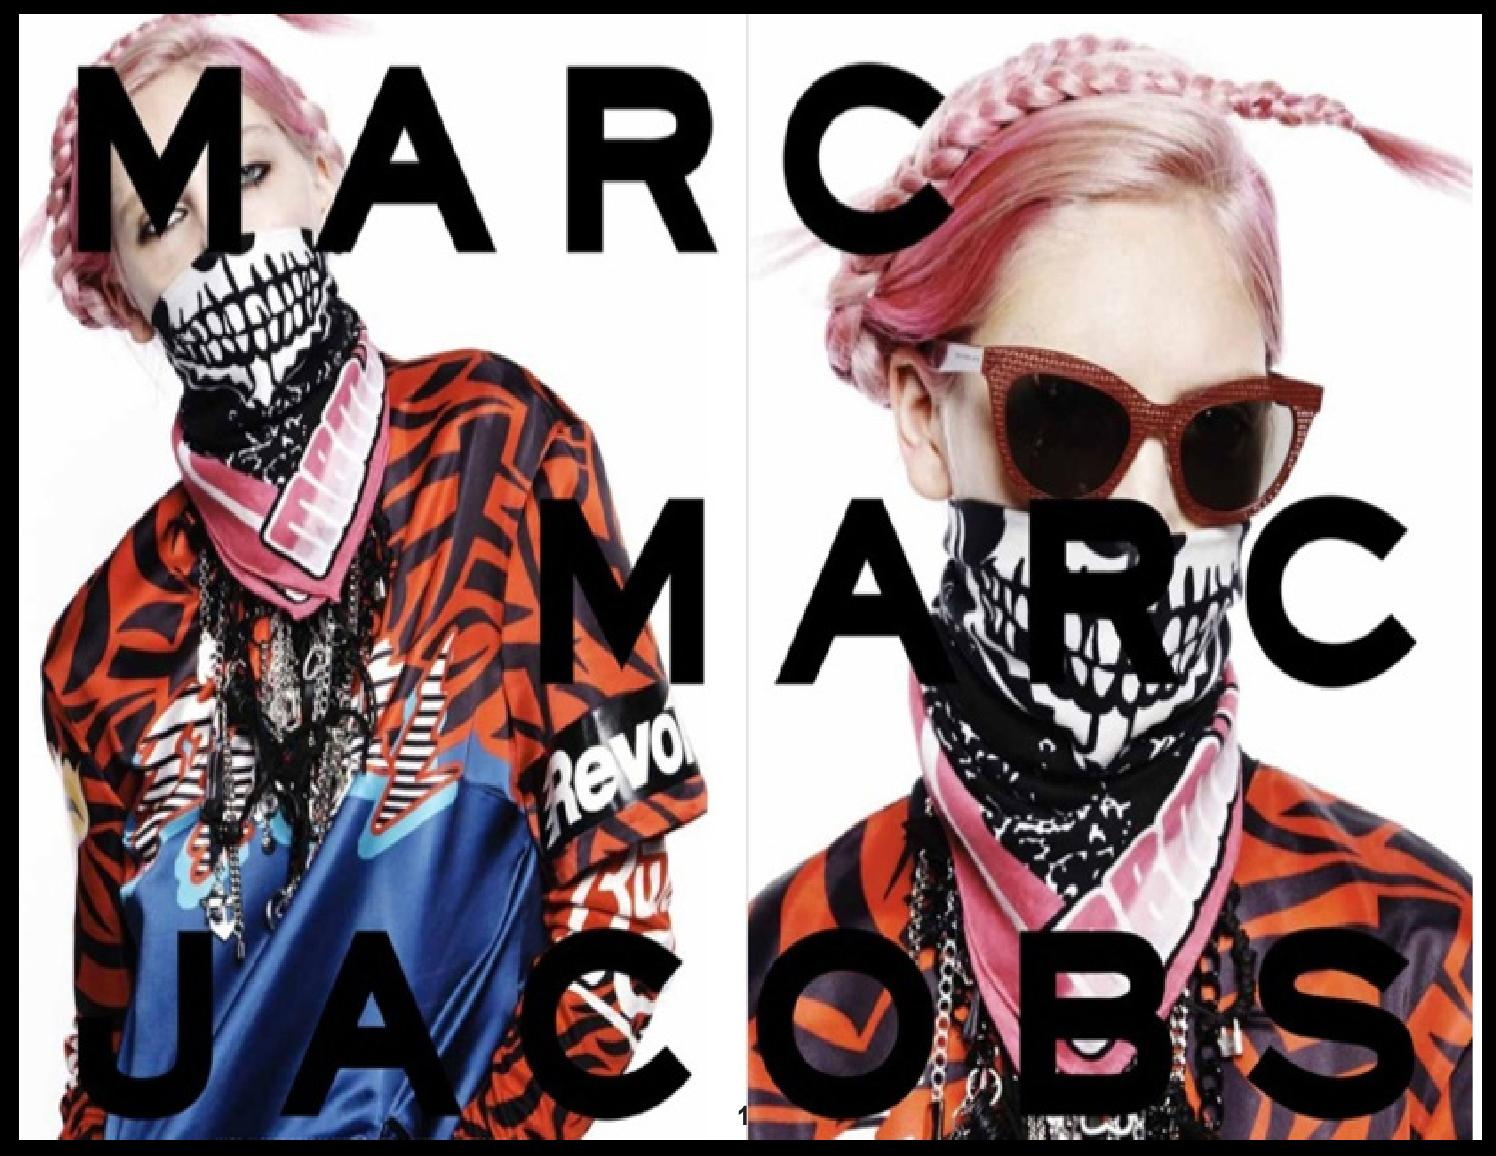 6254a64ffd942 6 Month Buying Plan for Marc by Marc Jacobs by Samantha Franco - issuu